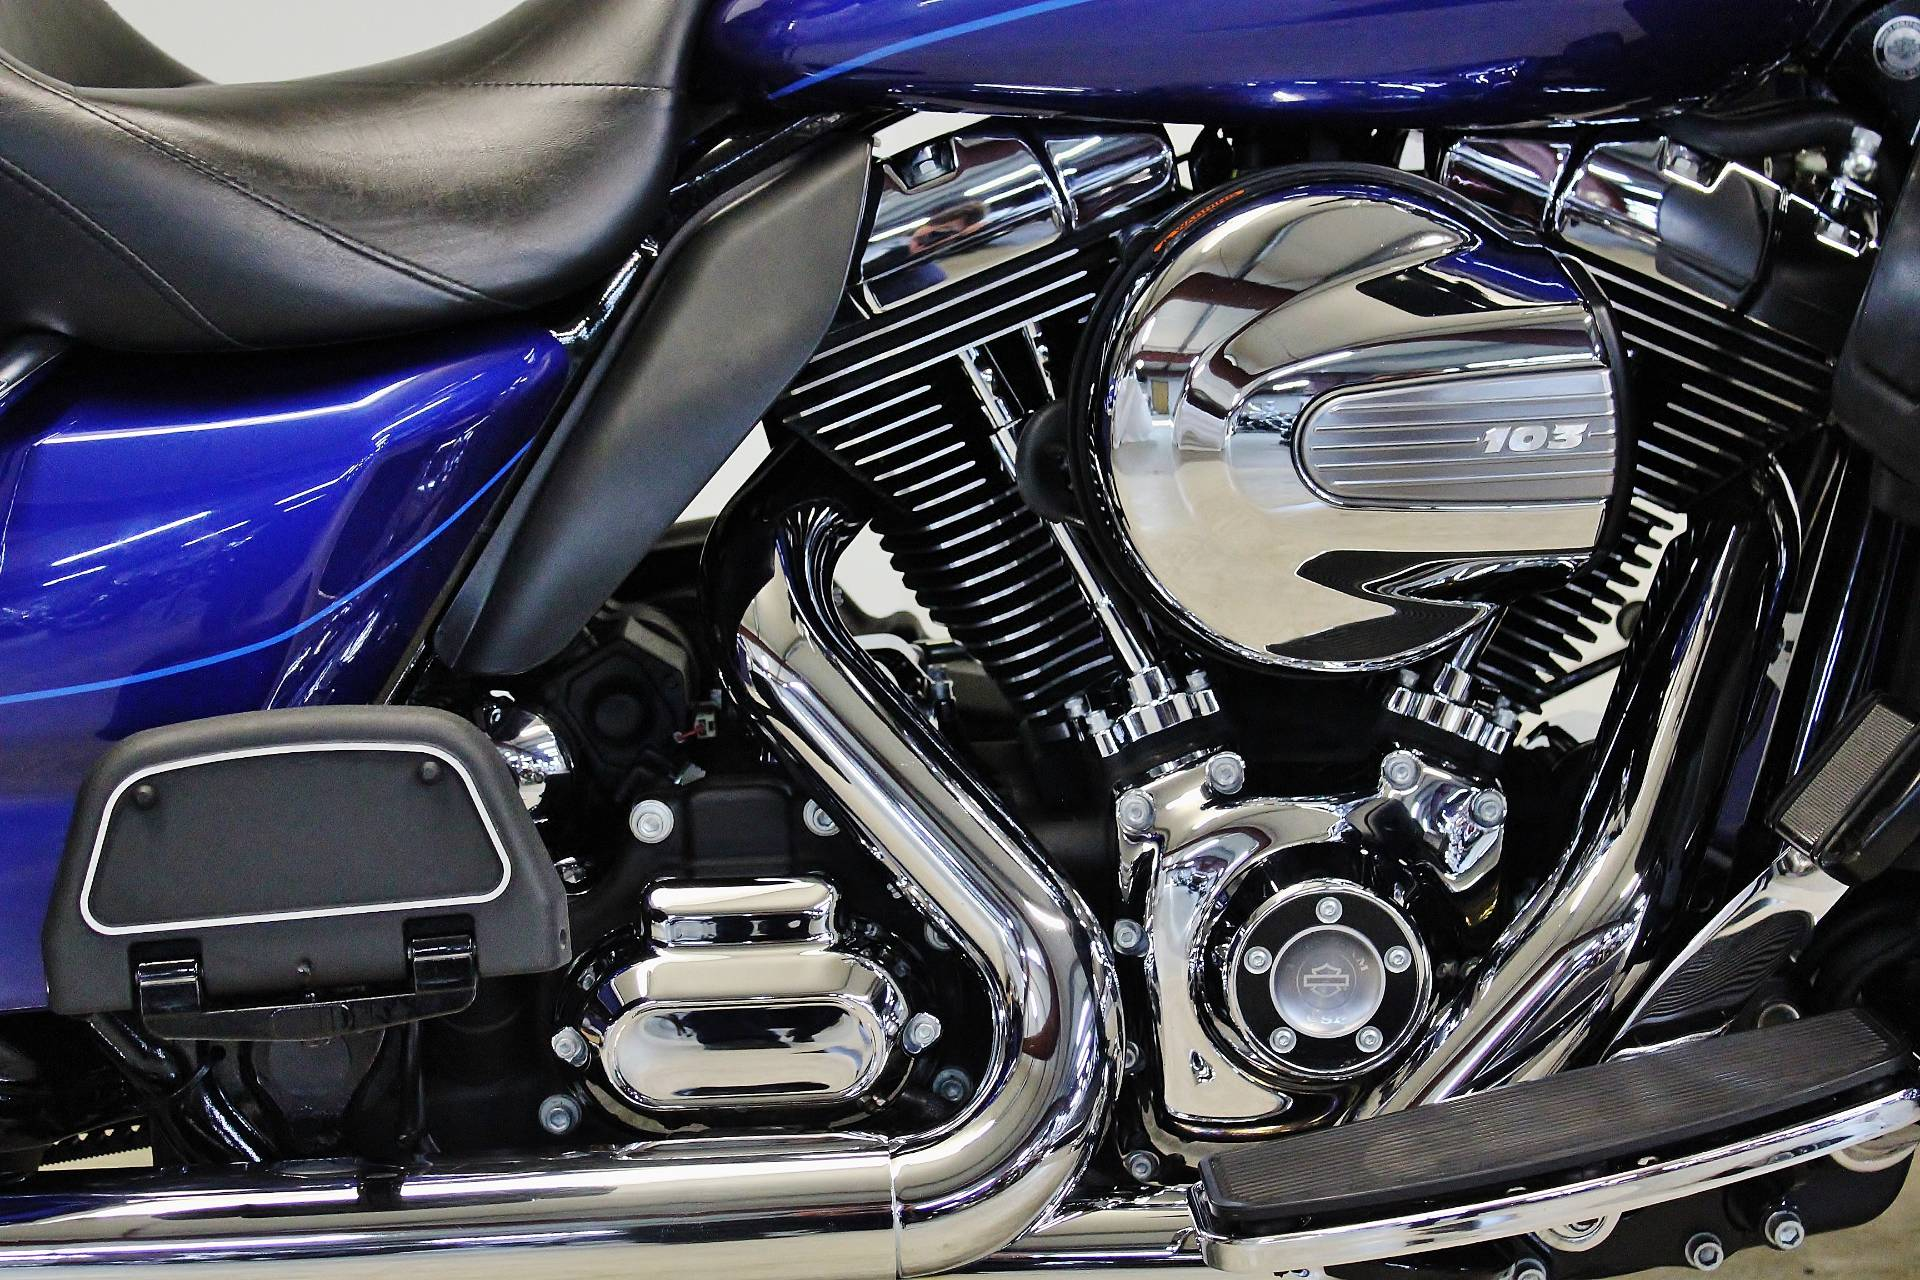 2015 Harley-Davidson Ultra Limited in Pittsfield, Massachusetts